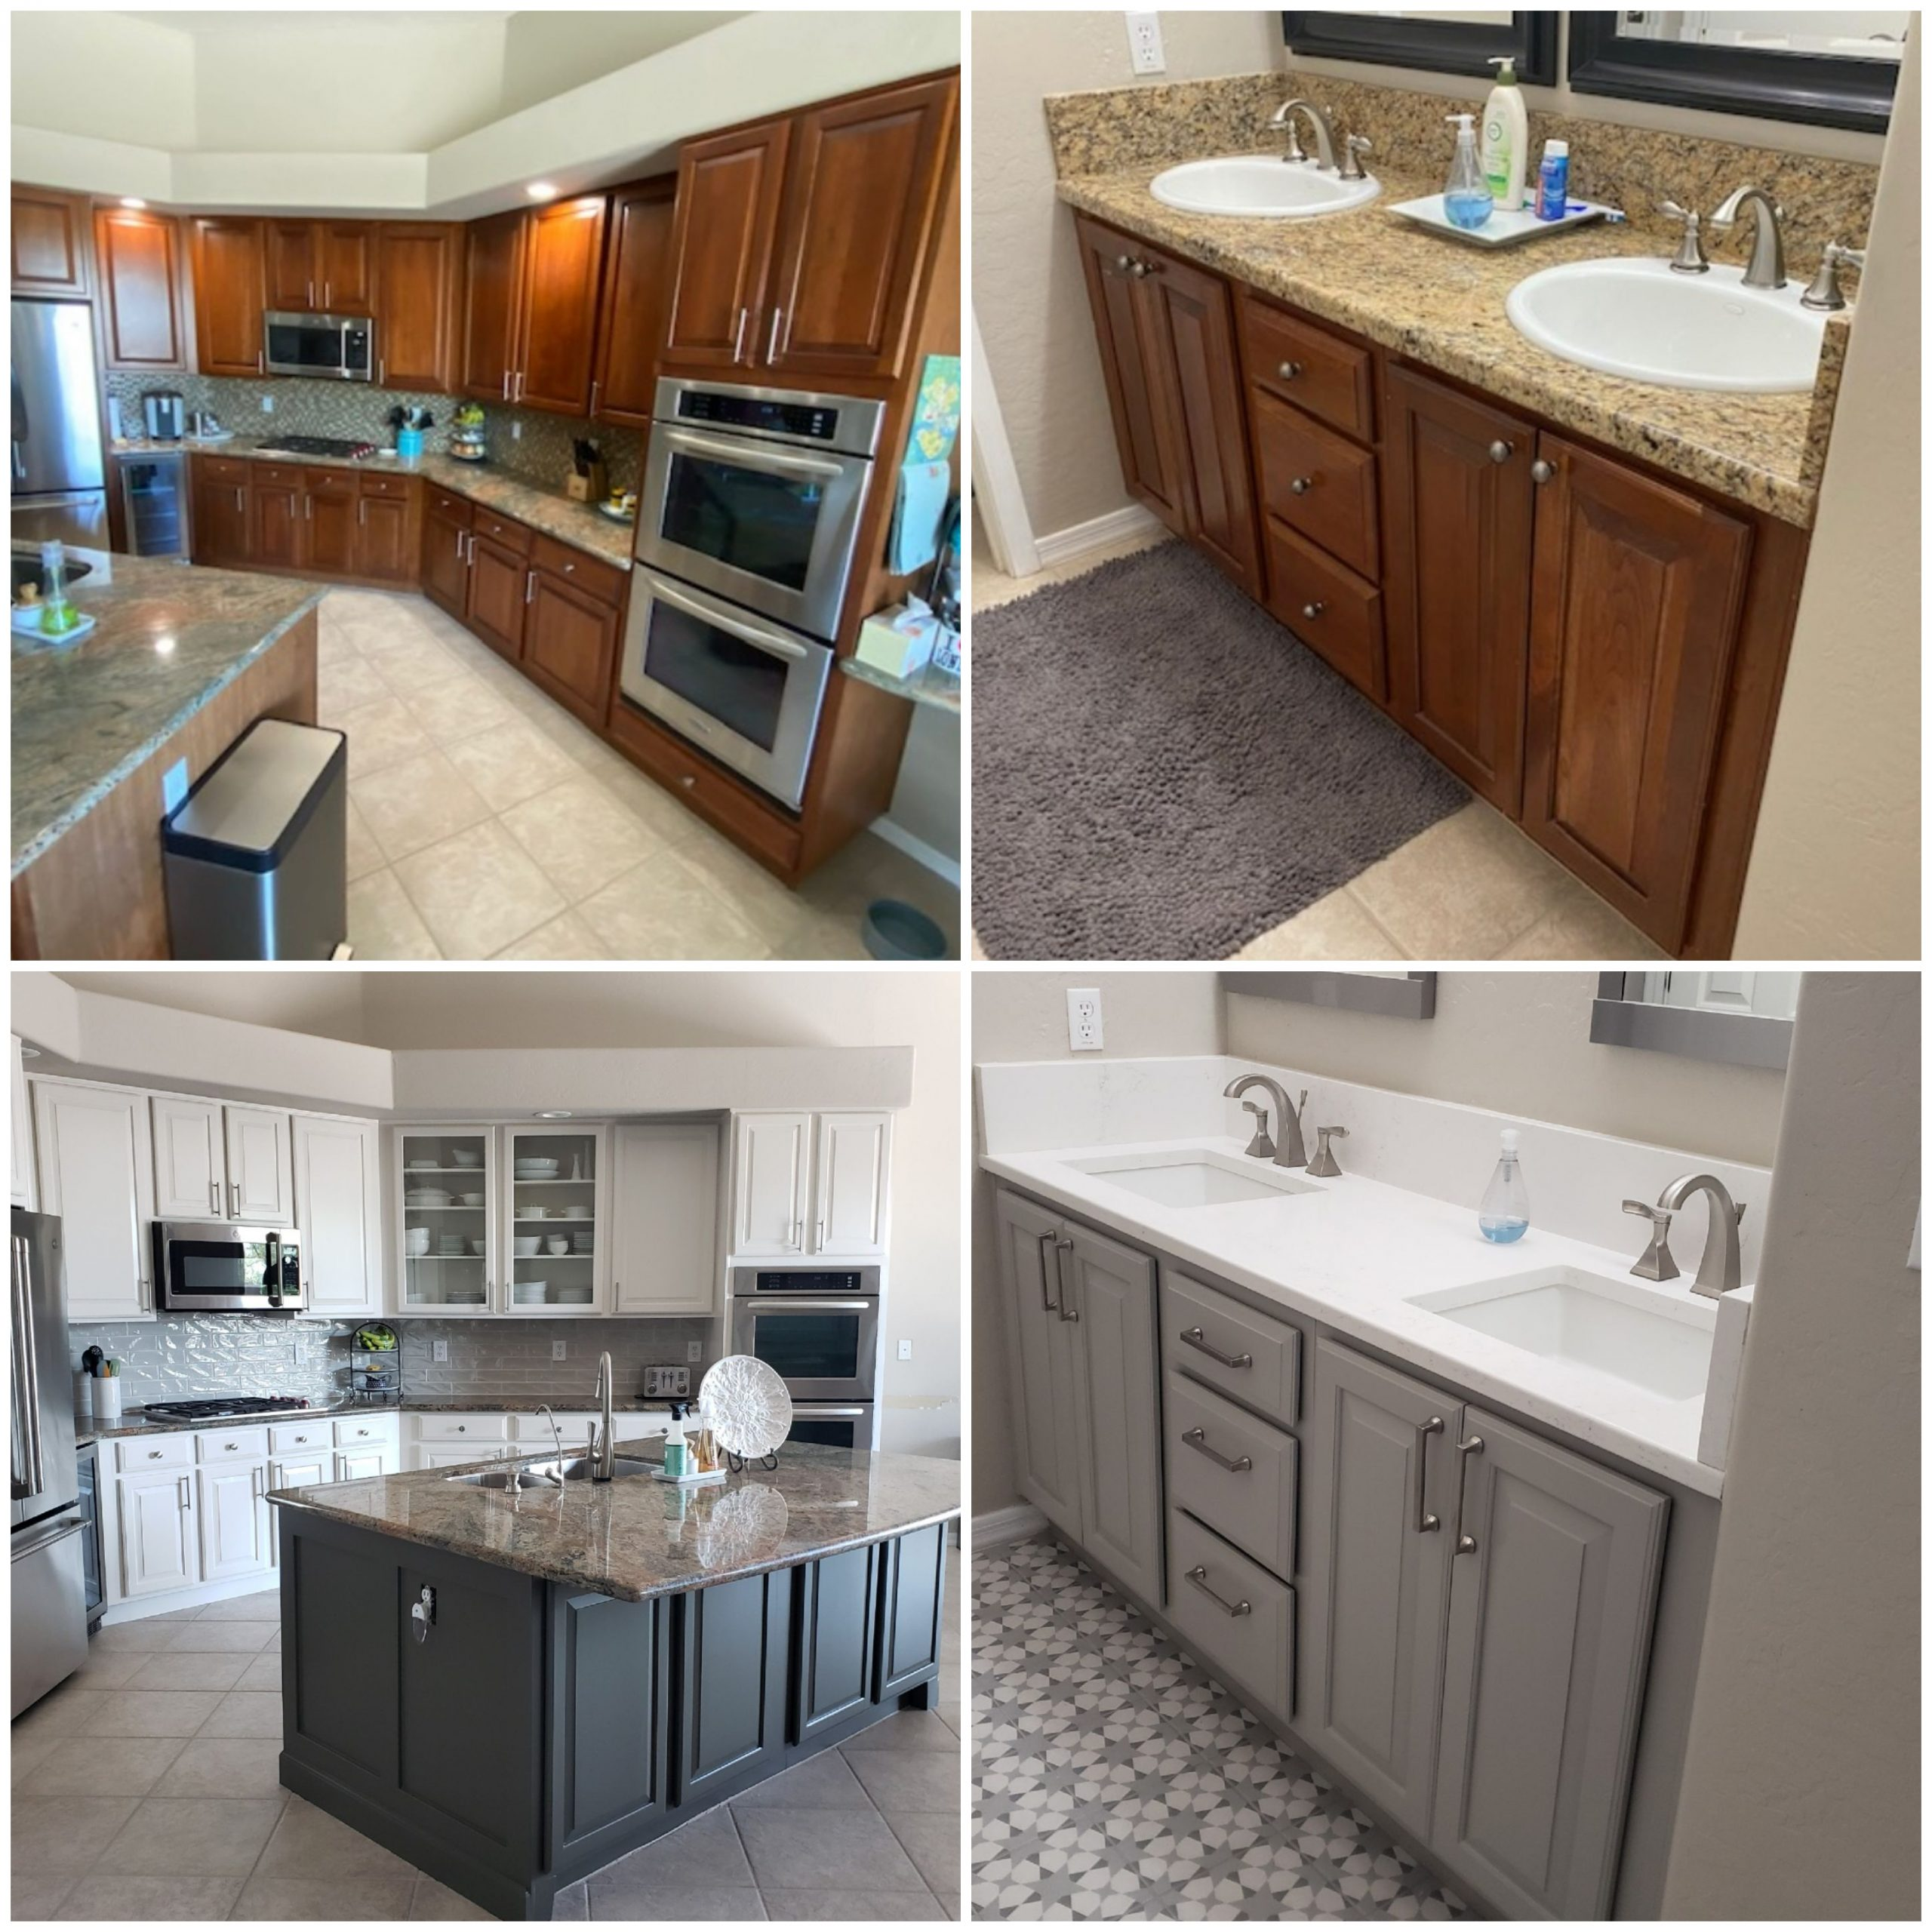 Grey and White Kitchen and Bathroom Refinished Cabinets